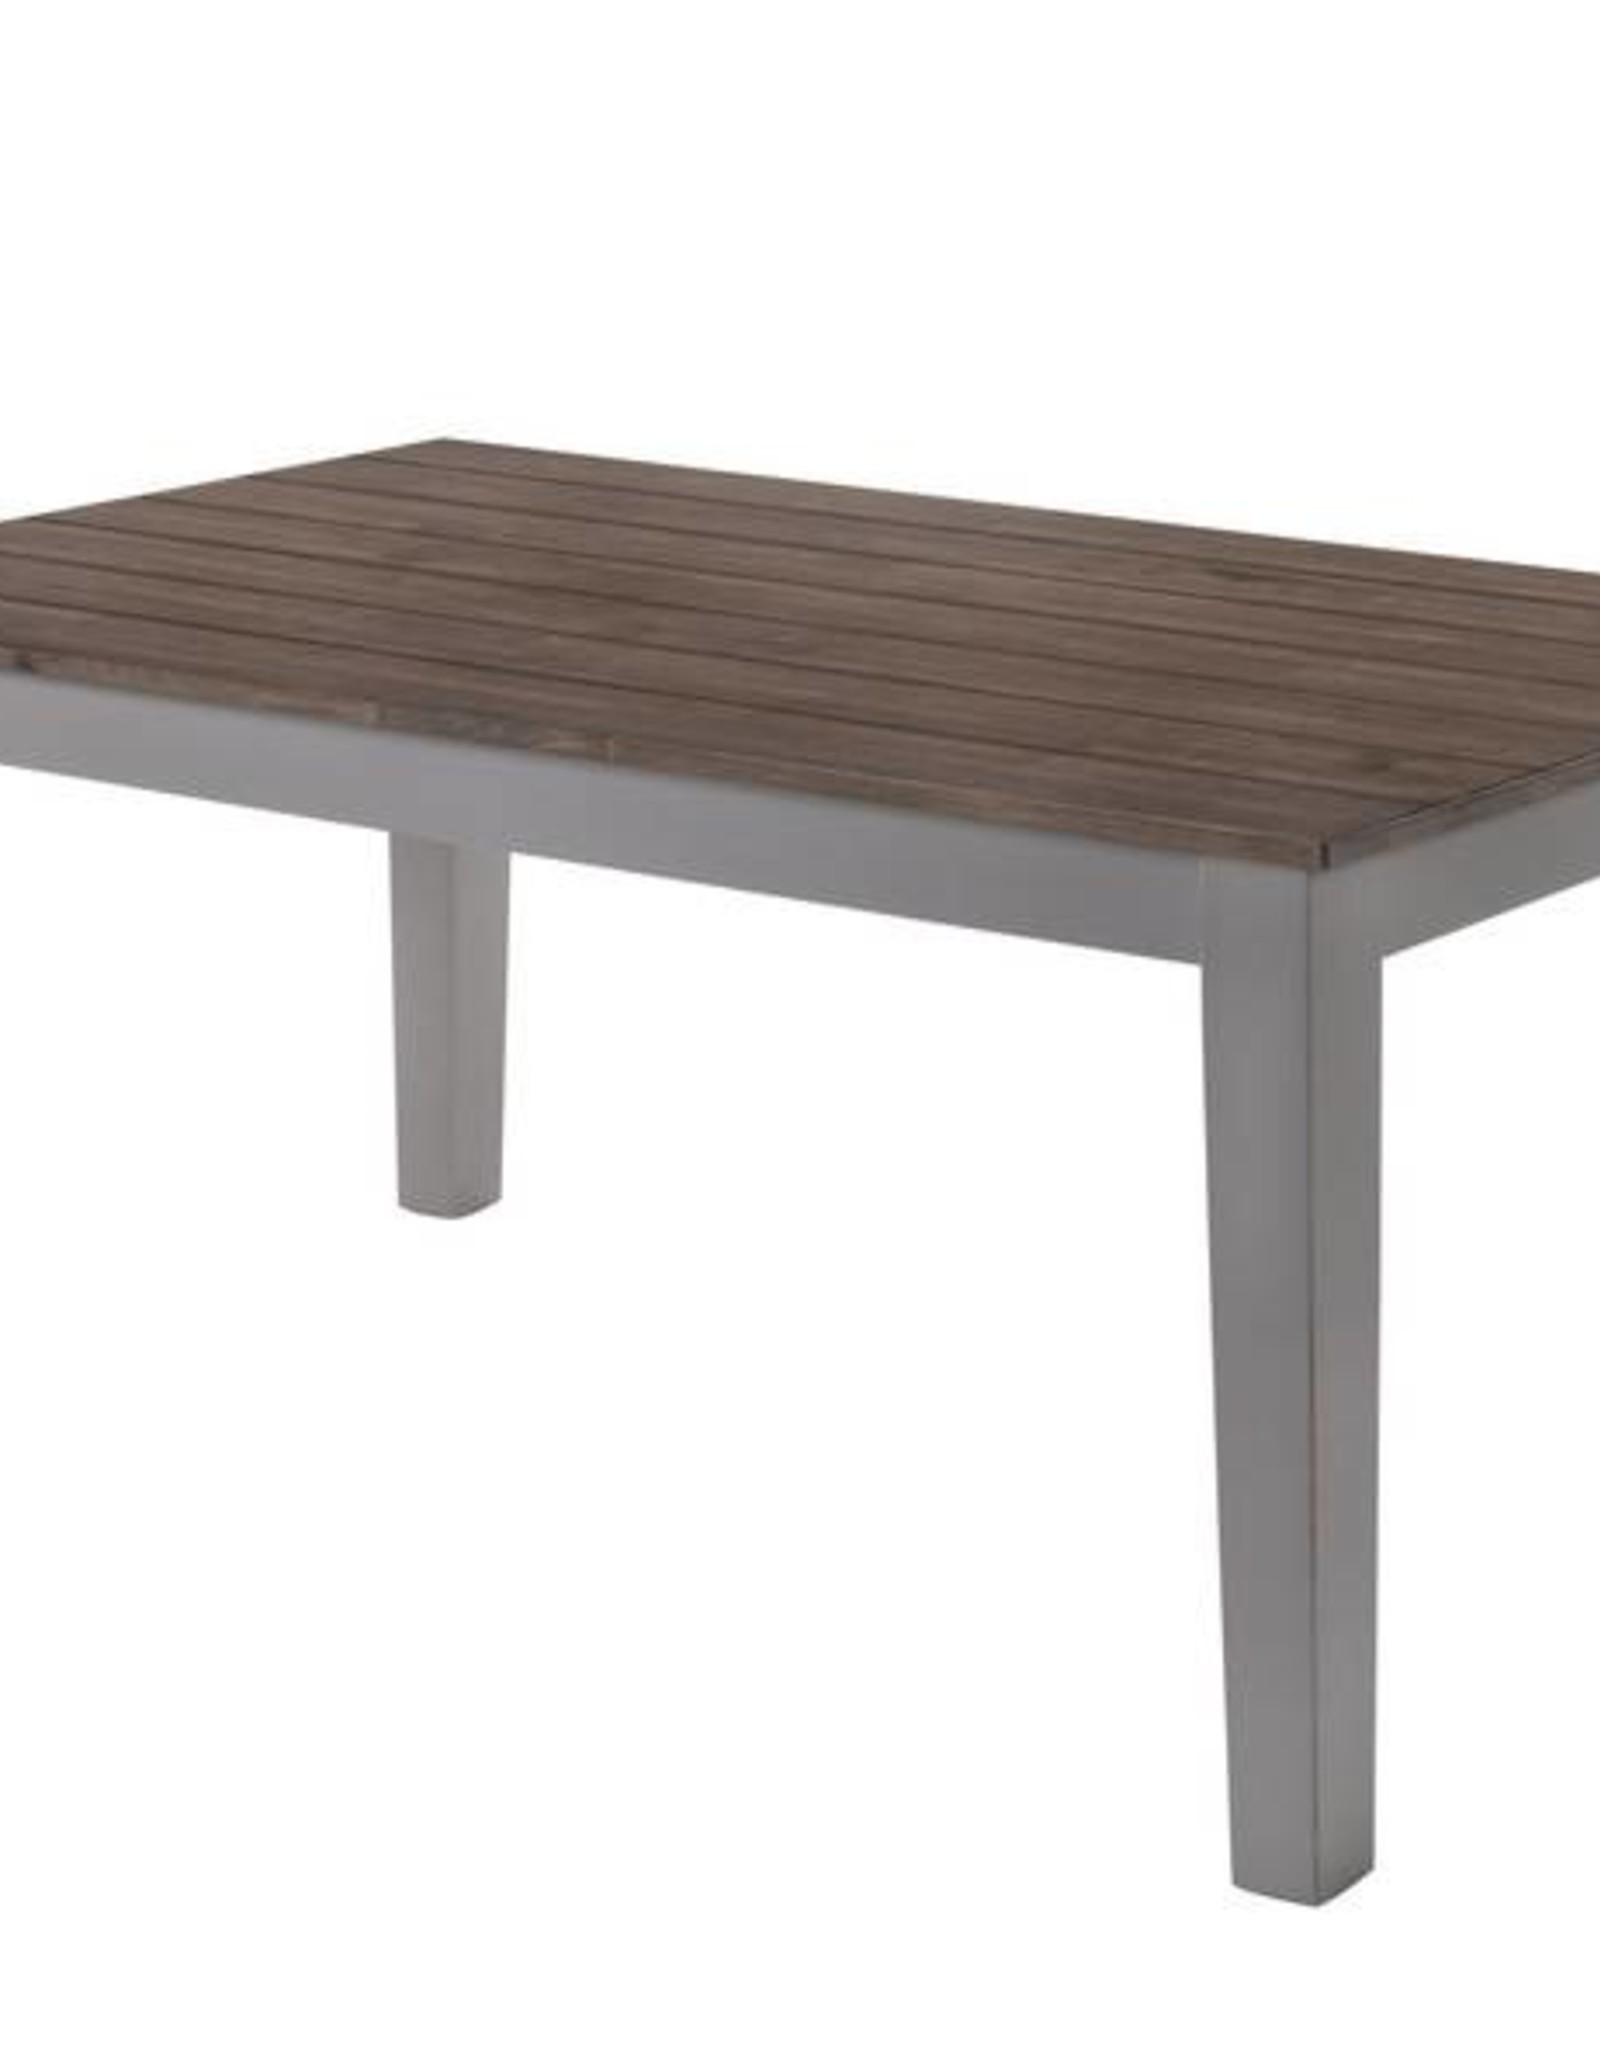 United A La Carte Rectangular Dining Table - Gray